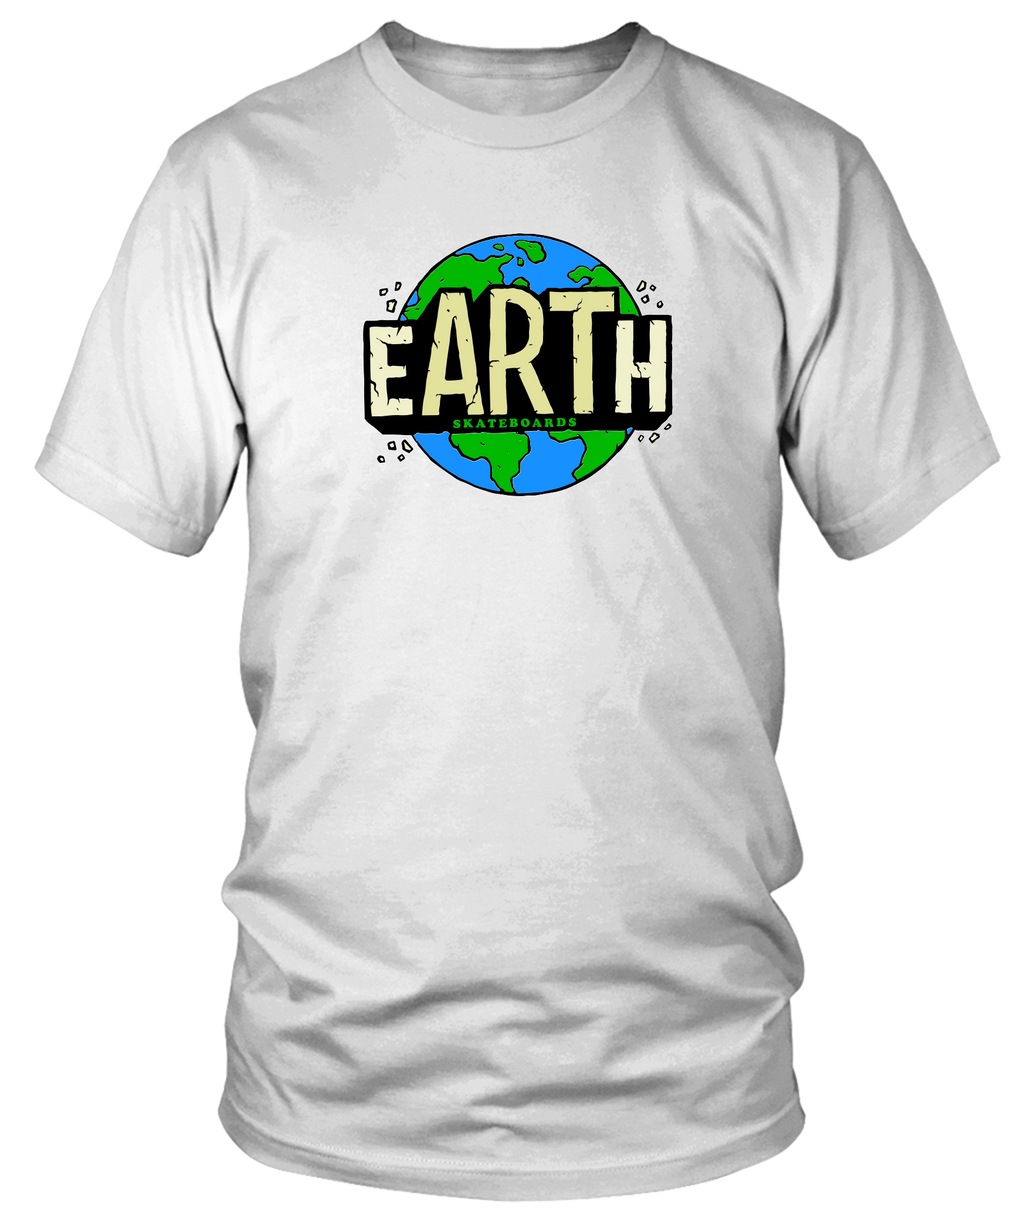 White Earth Shirt - Earth